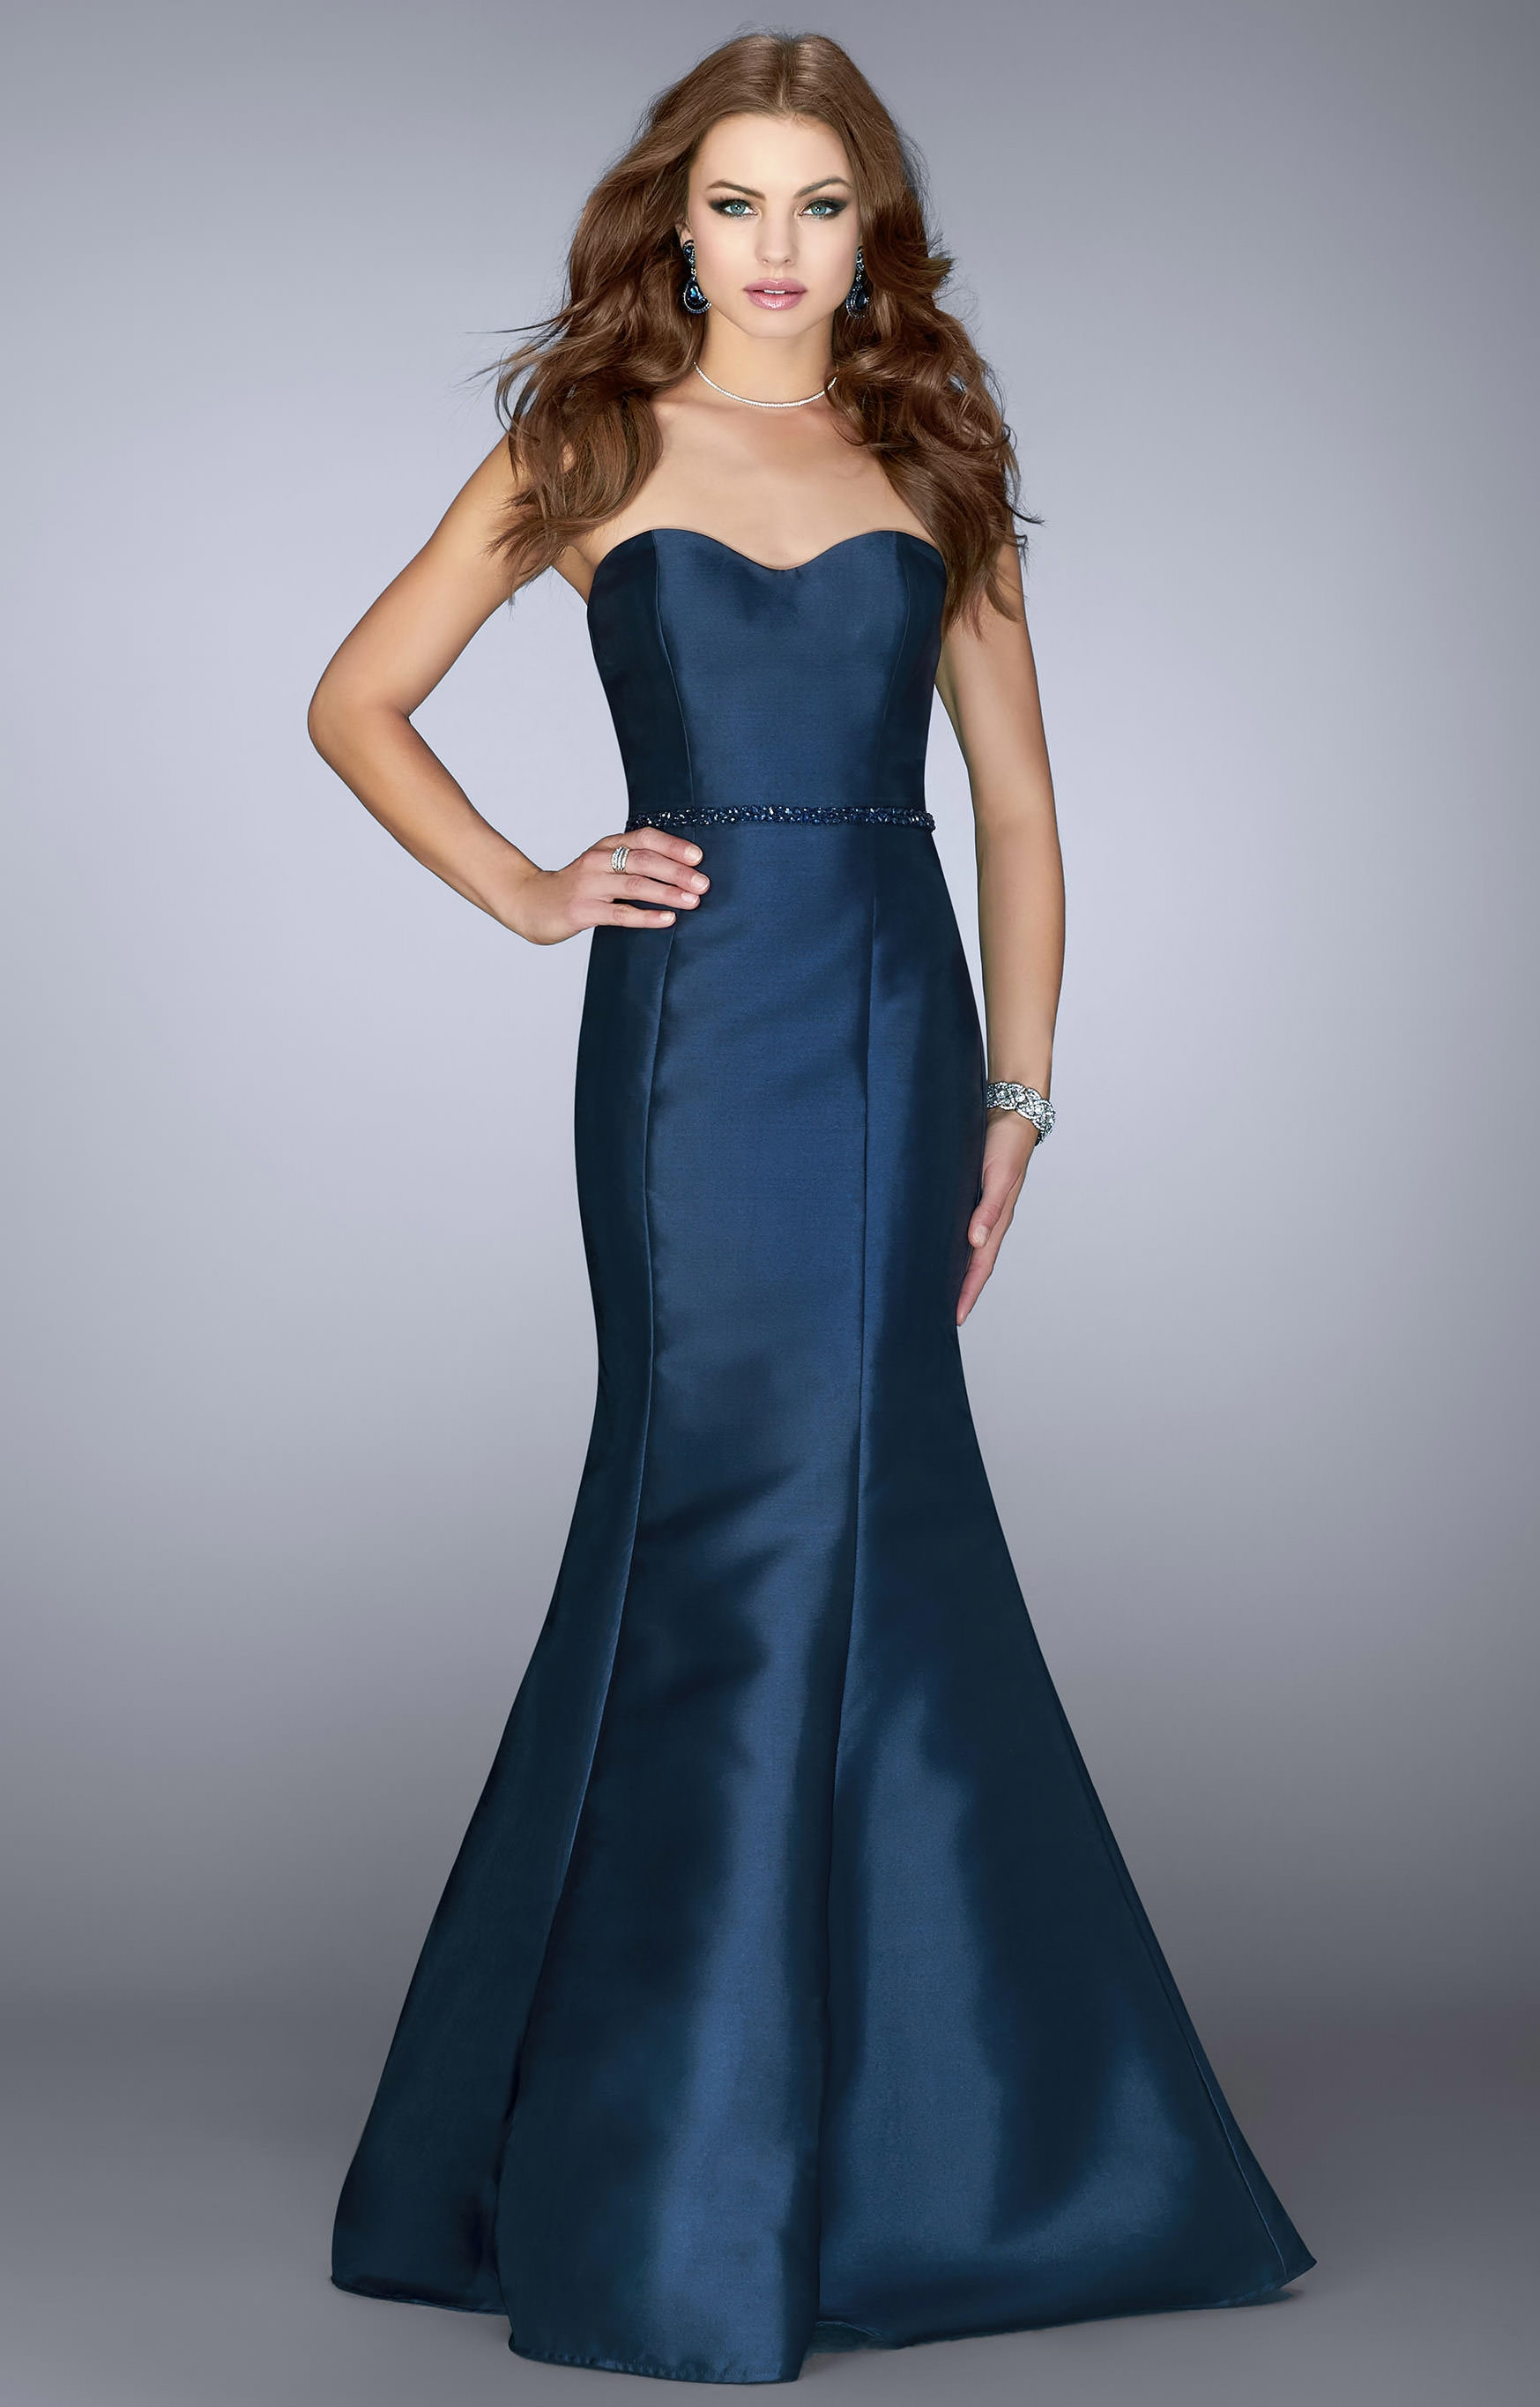 Luxury Navy Blue Beaded A Line Prom Dress With Sheer Neck